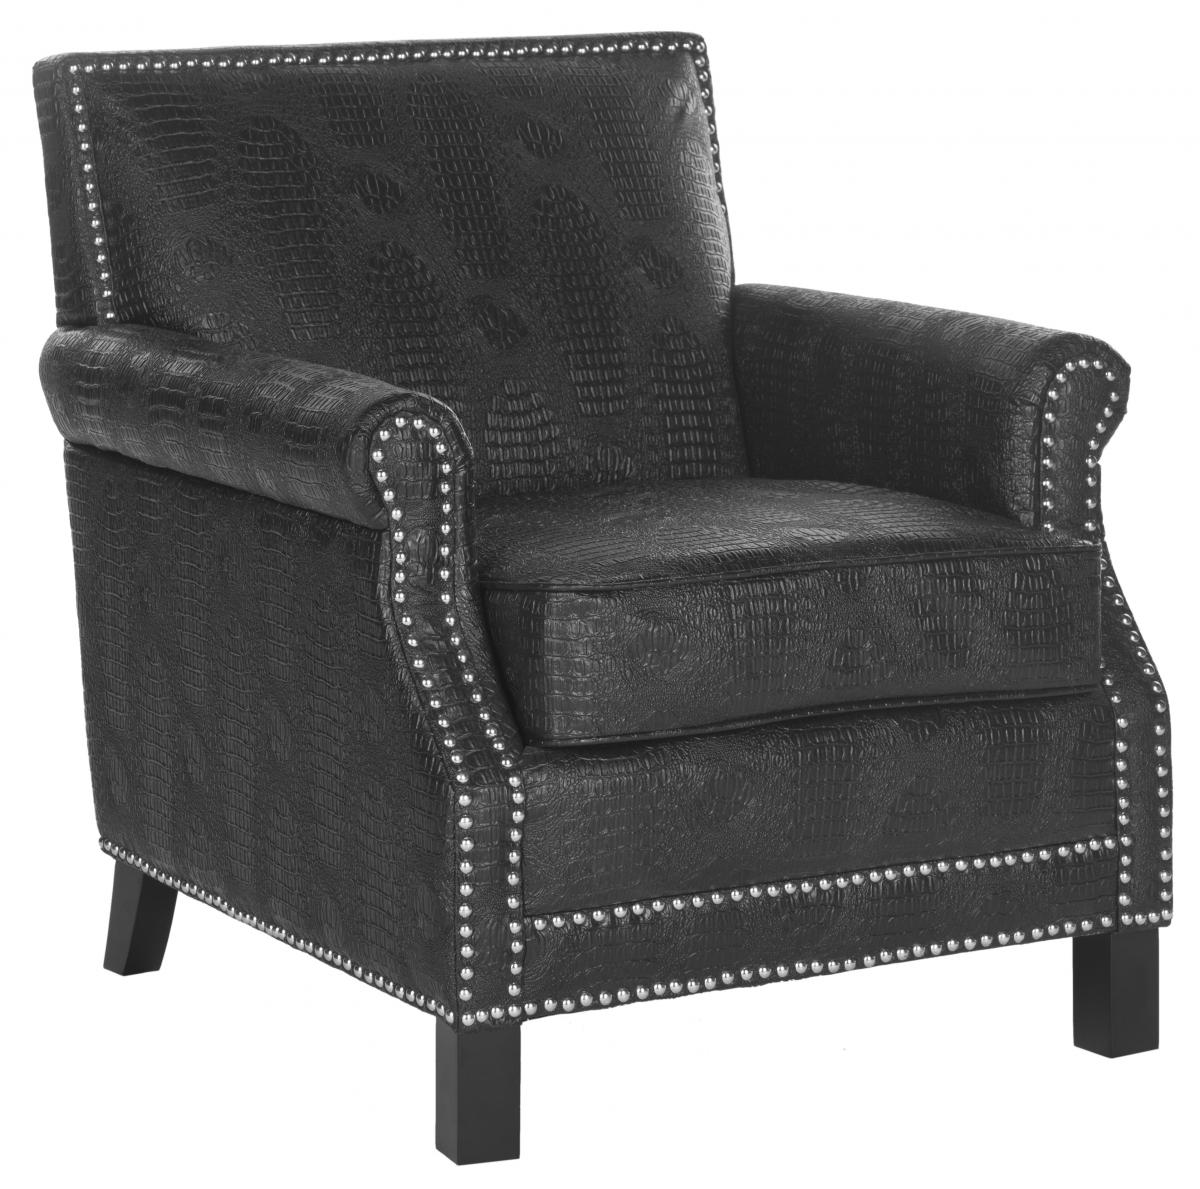 Safavieh - MCR4572F EASTON CLUB CHAIR - BLACK CROC FINISH